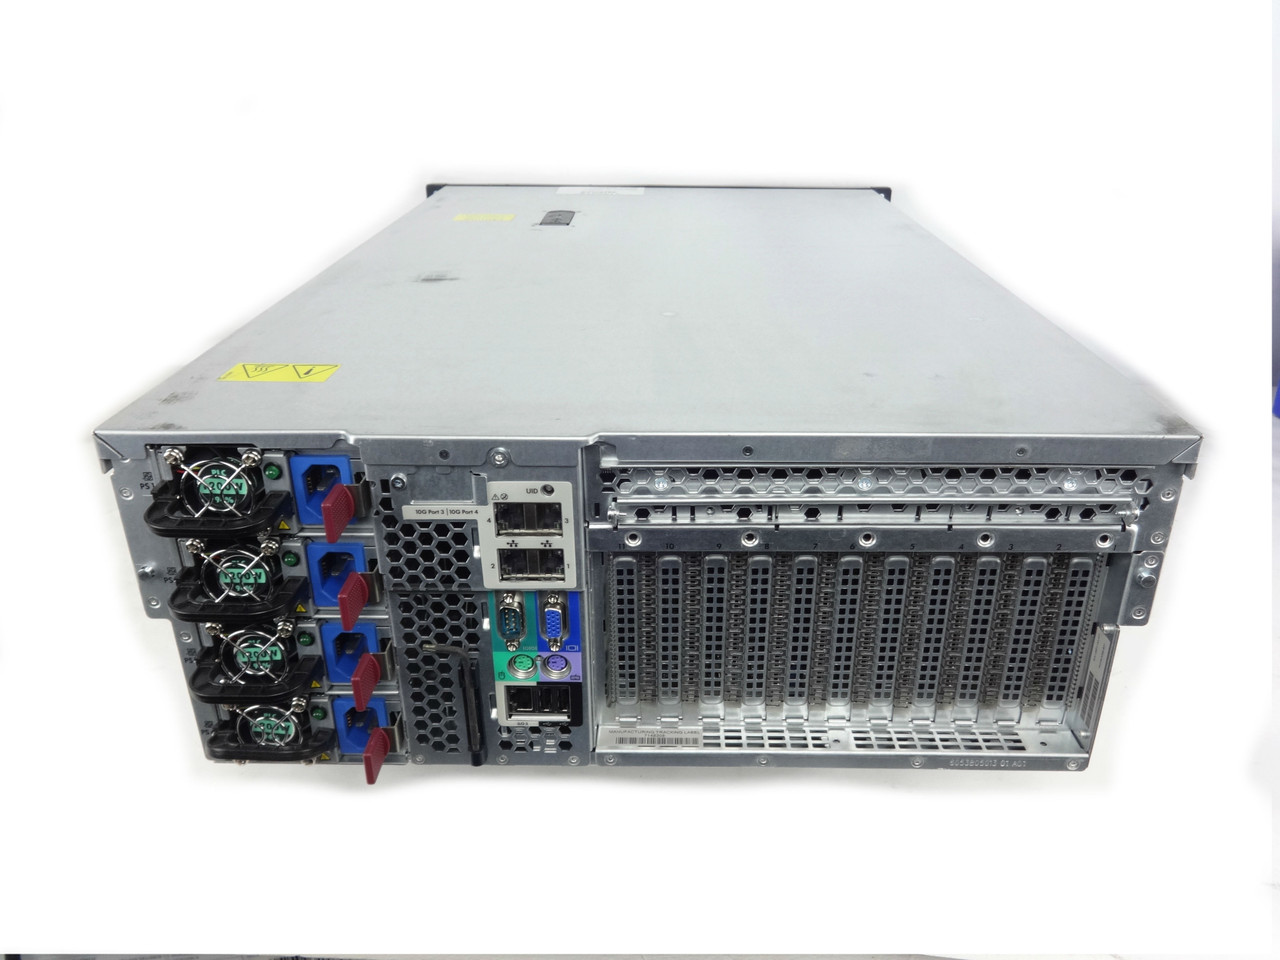 Proliant DL580 G7 Back of Machine